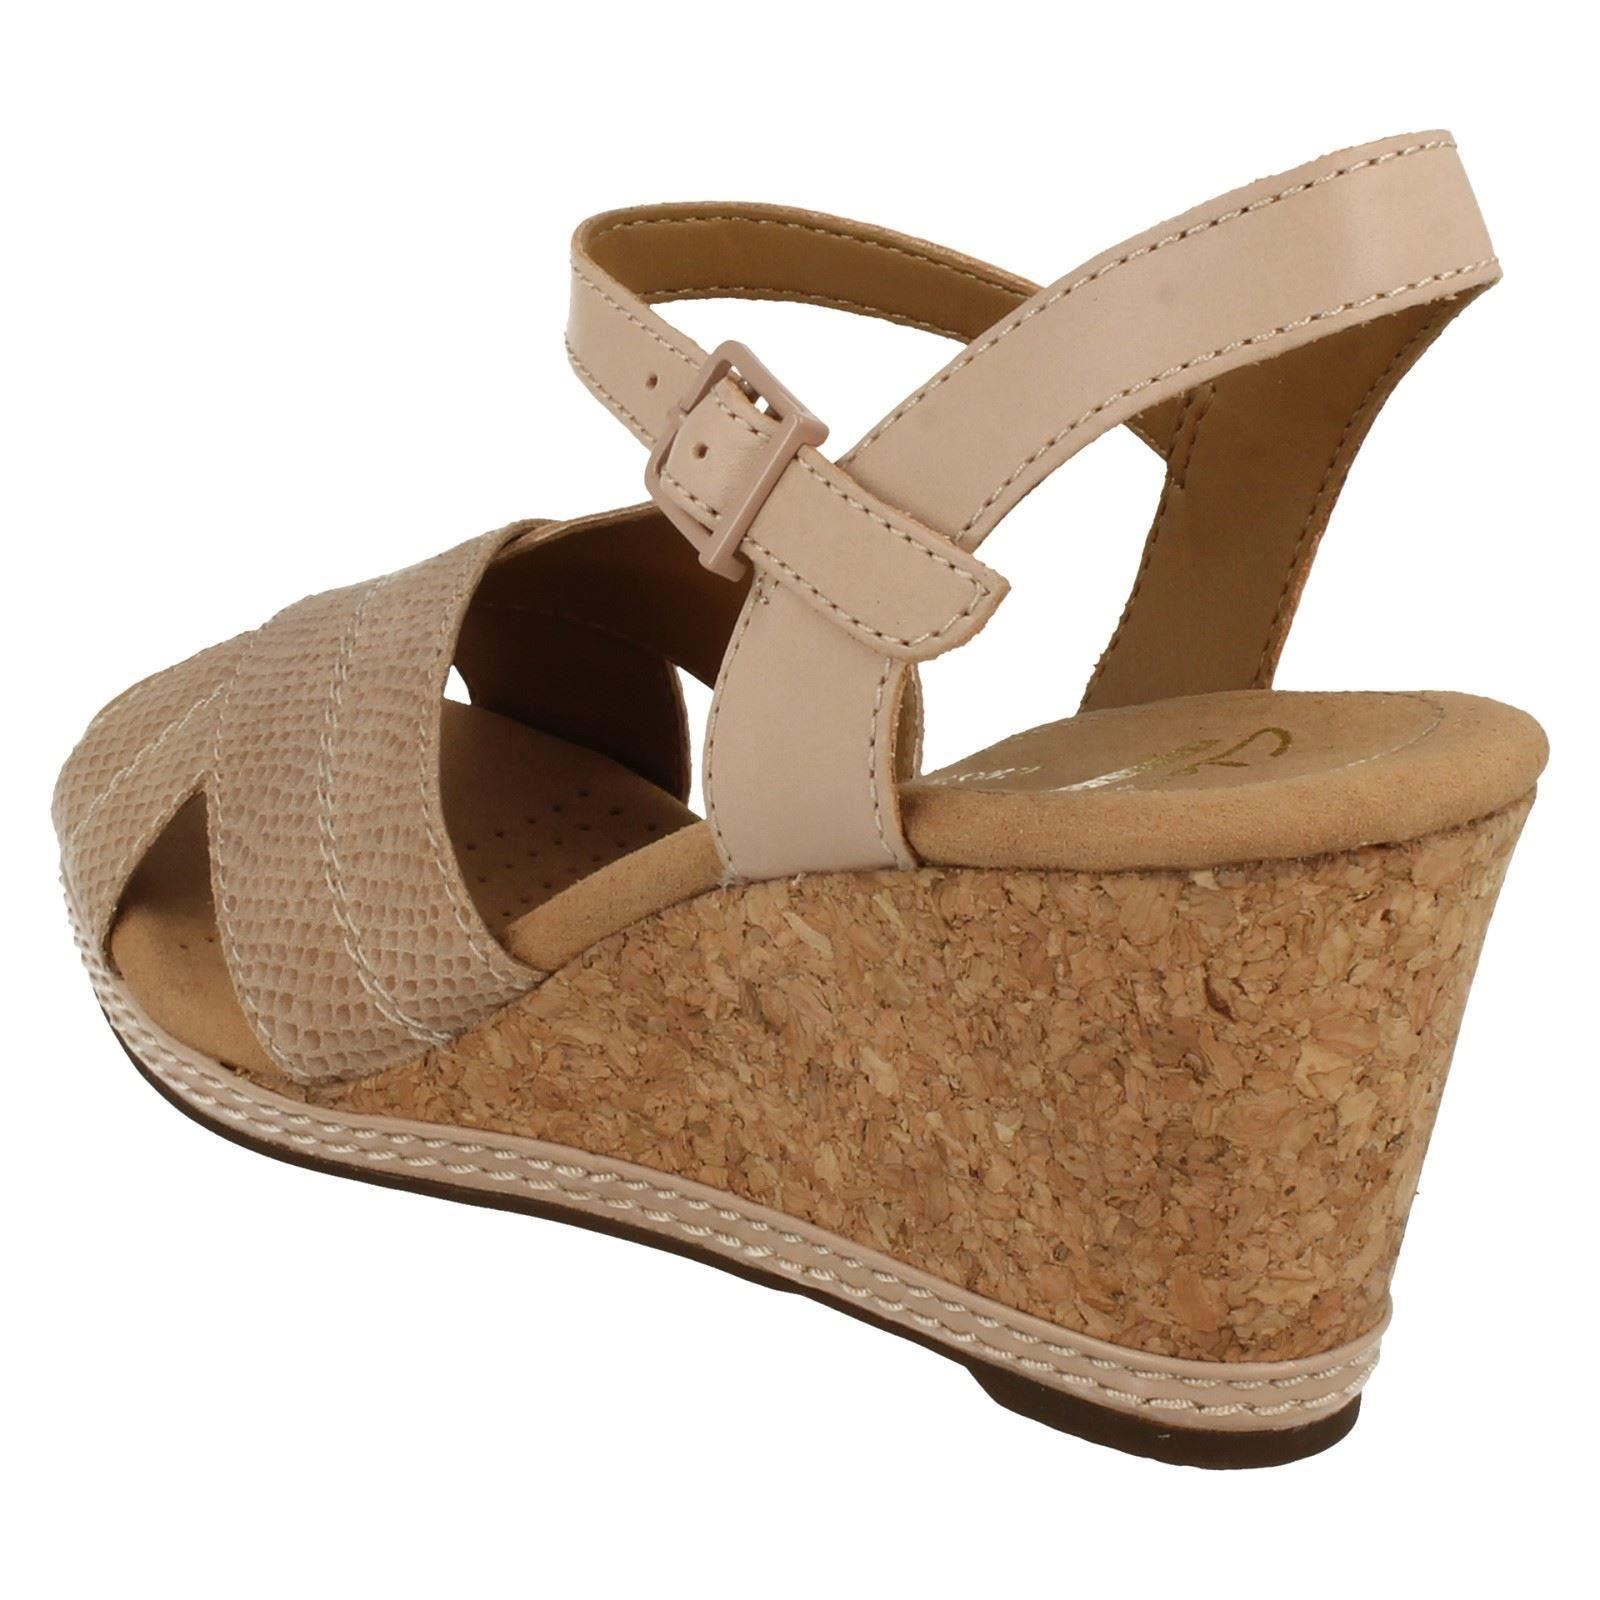 ff7a35864ae Ladies-Clarks-Helio-Latitude-Open-Toe-Wedge-Sandals thumbnail